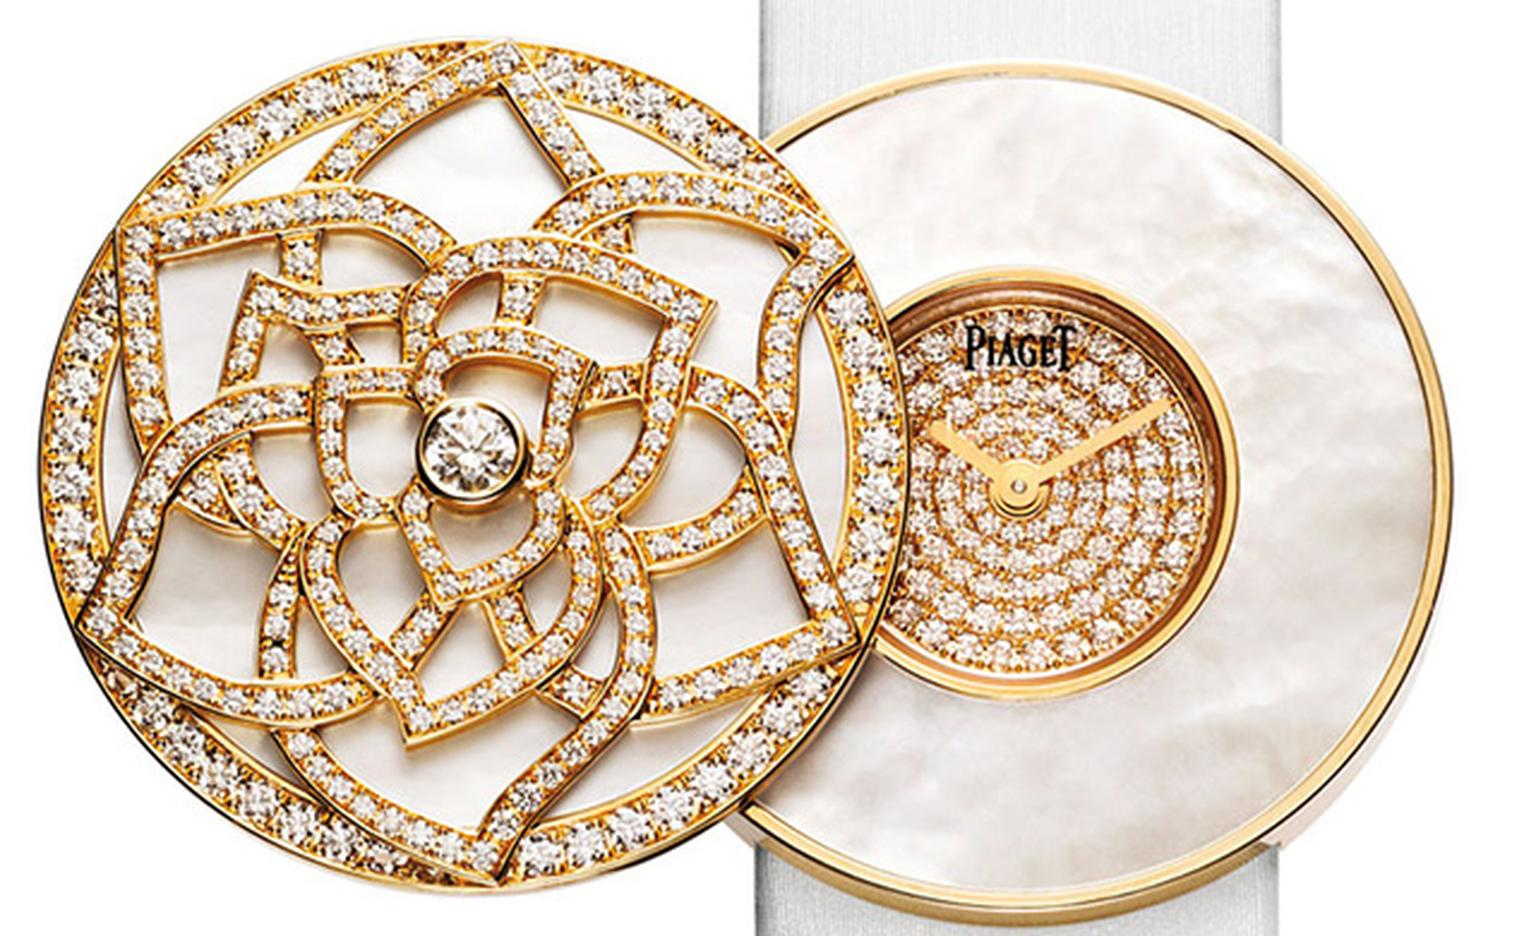 Piaget Limelight dial close crop